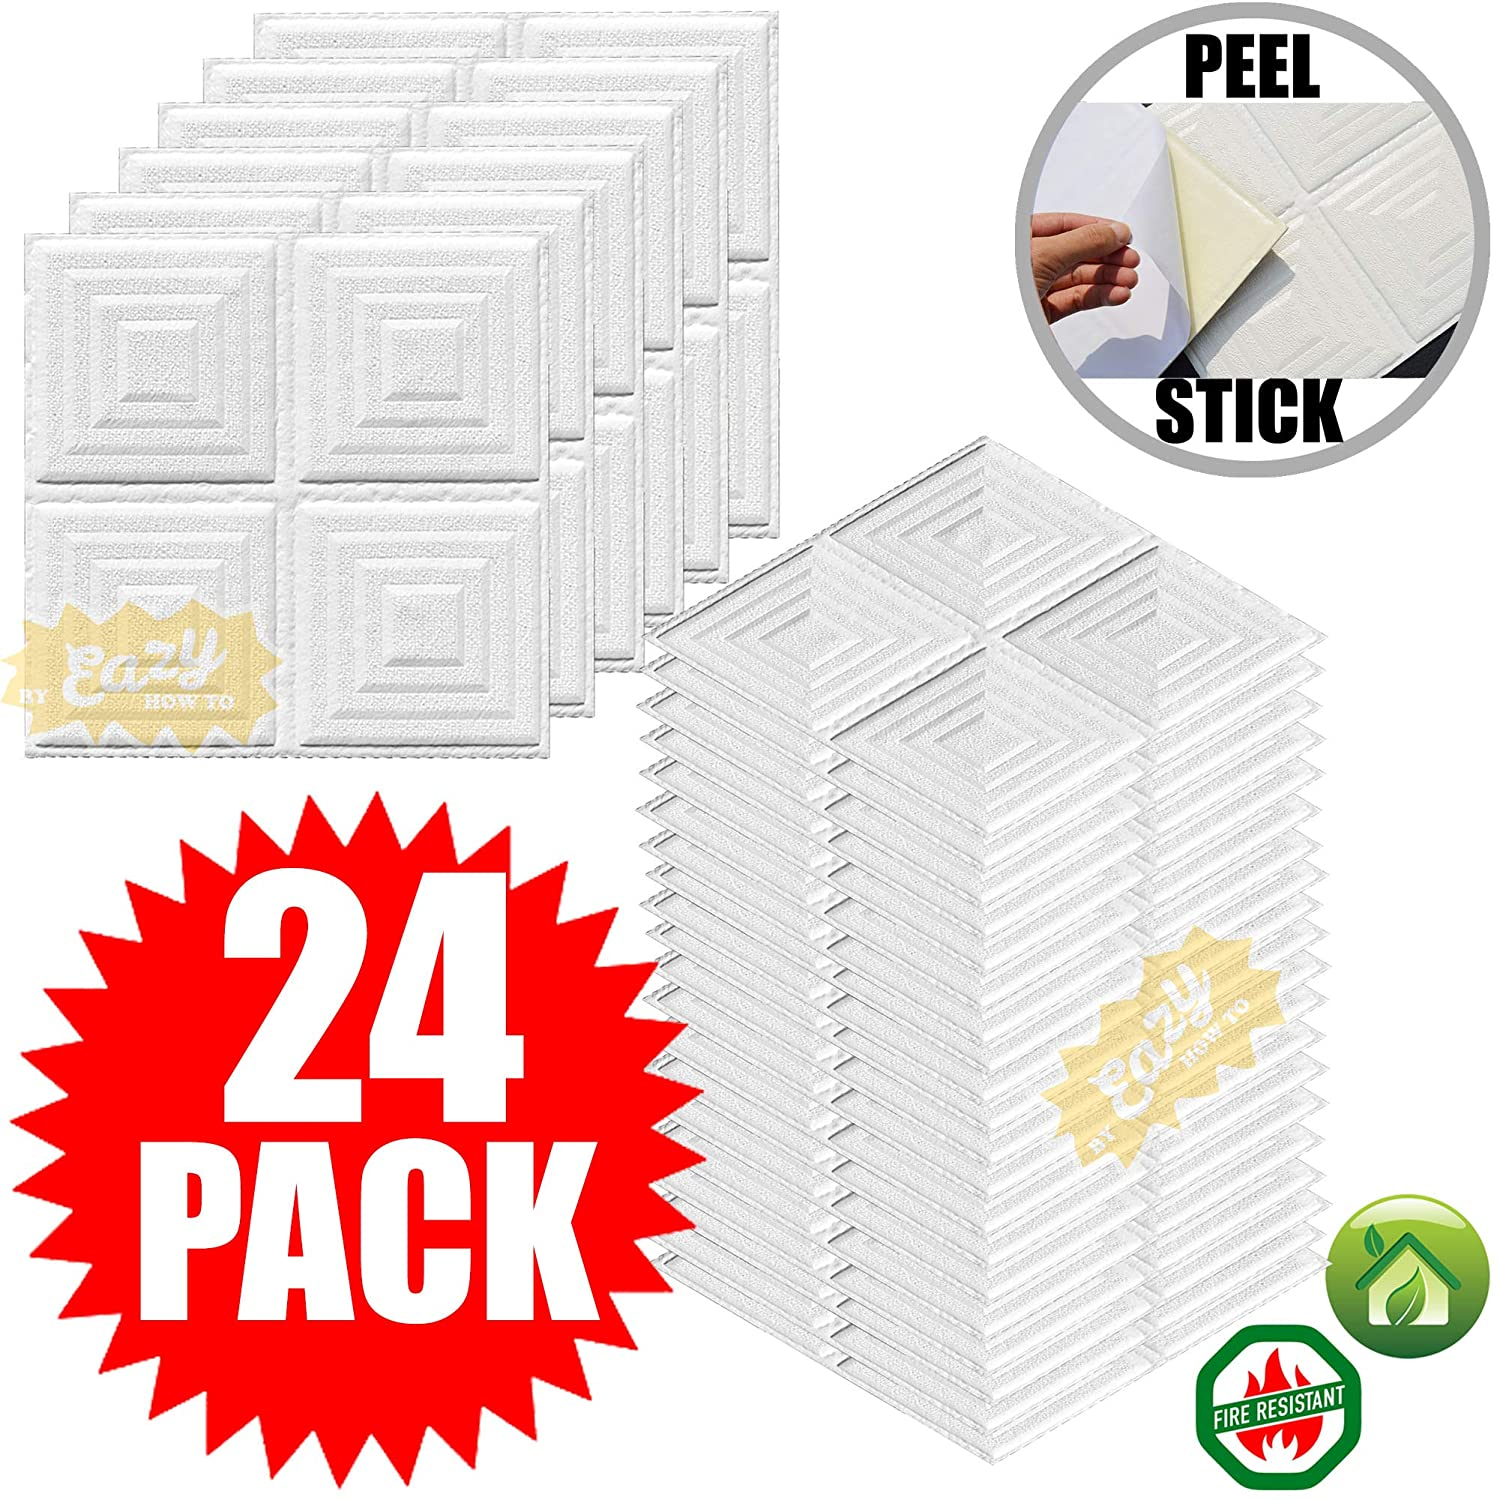 46 pack ceiling tiles 30cm x 30cm pyramid style peel and stick easy installation textured panels